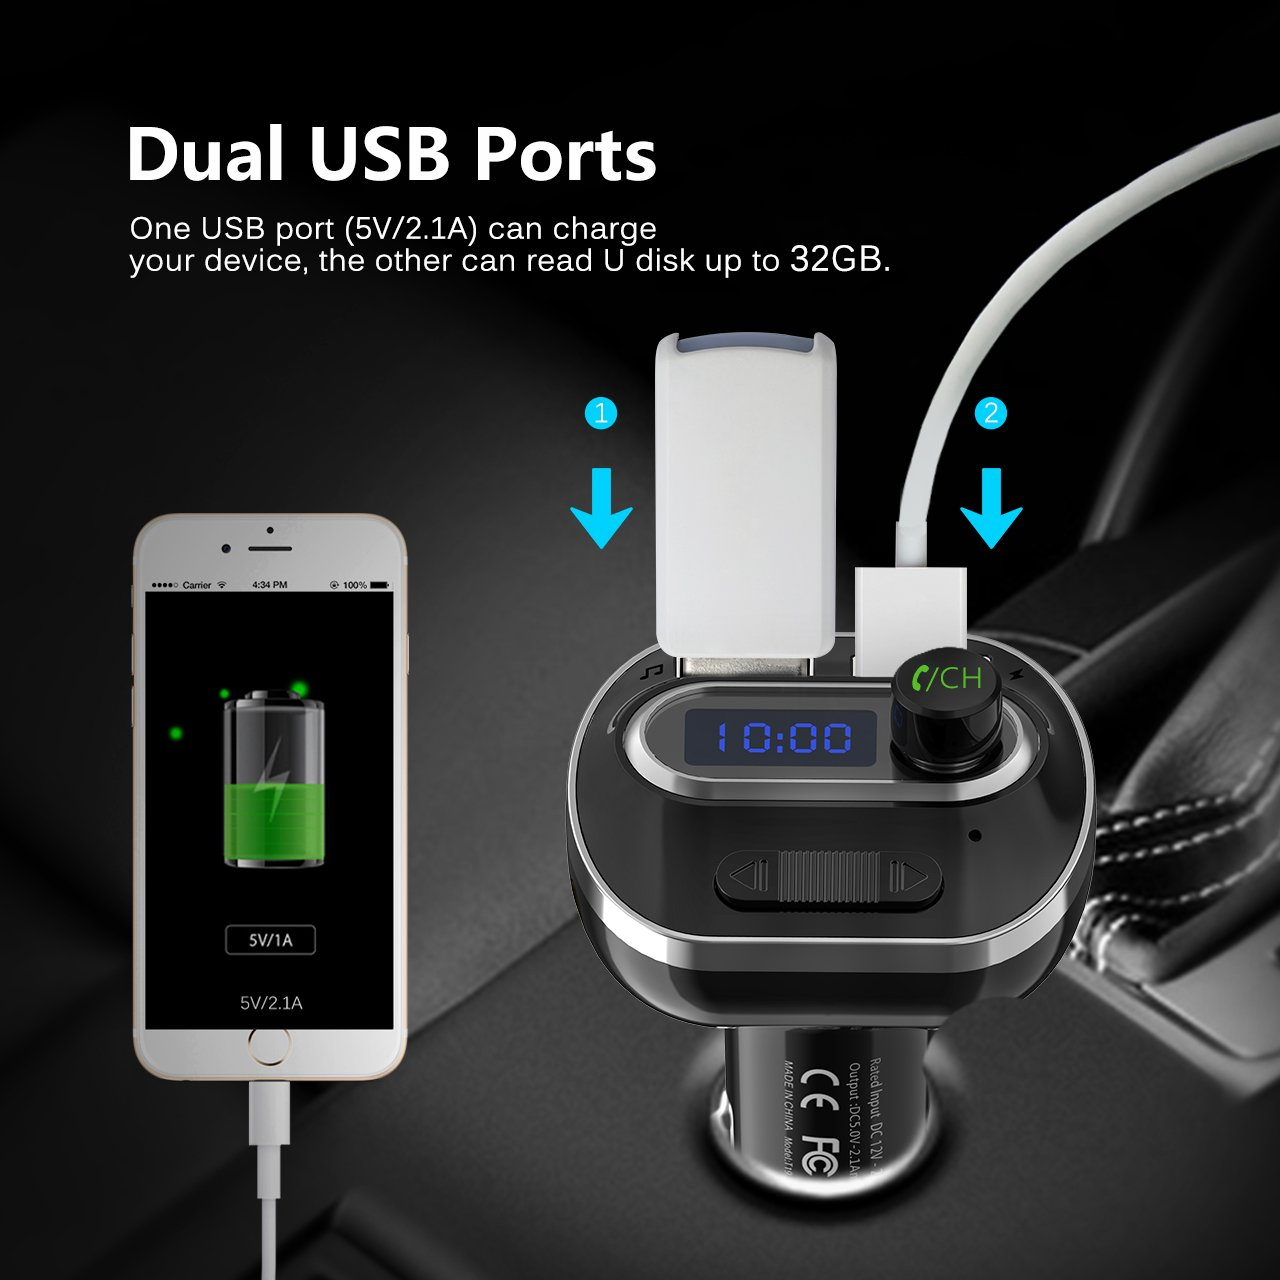 VicTsing (Upgraded Version) V4.1 Bluetooth FM Transmitter for Car, Wireless Radio Transmitter Adapter with Music Player Support Aux Output Input, TF Card and U-Disk, Hands Free and Dual USB Ports by VicTsing (Image #5)